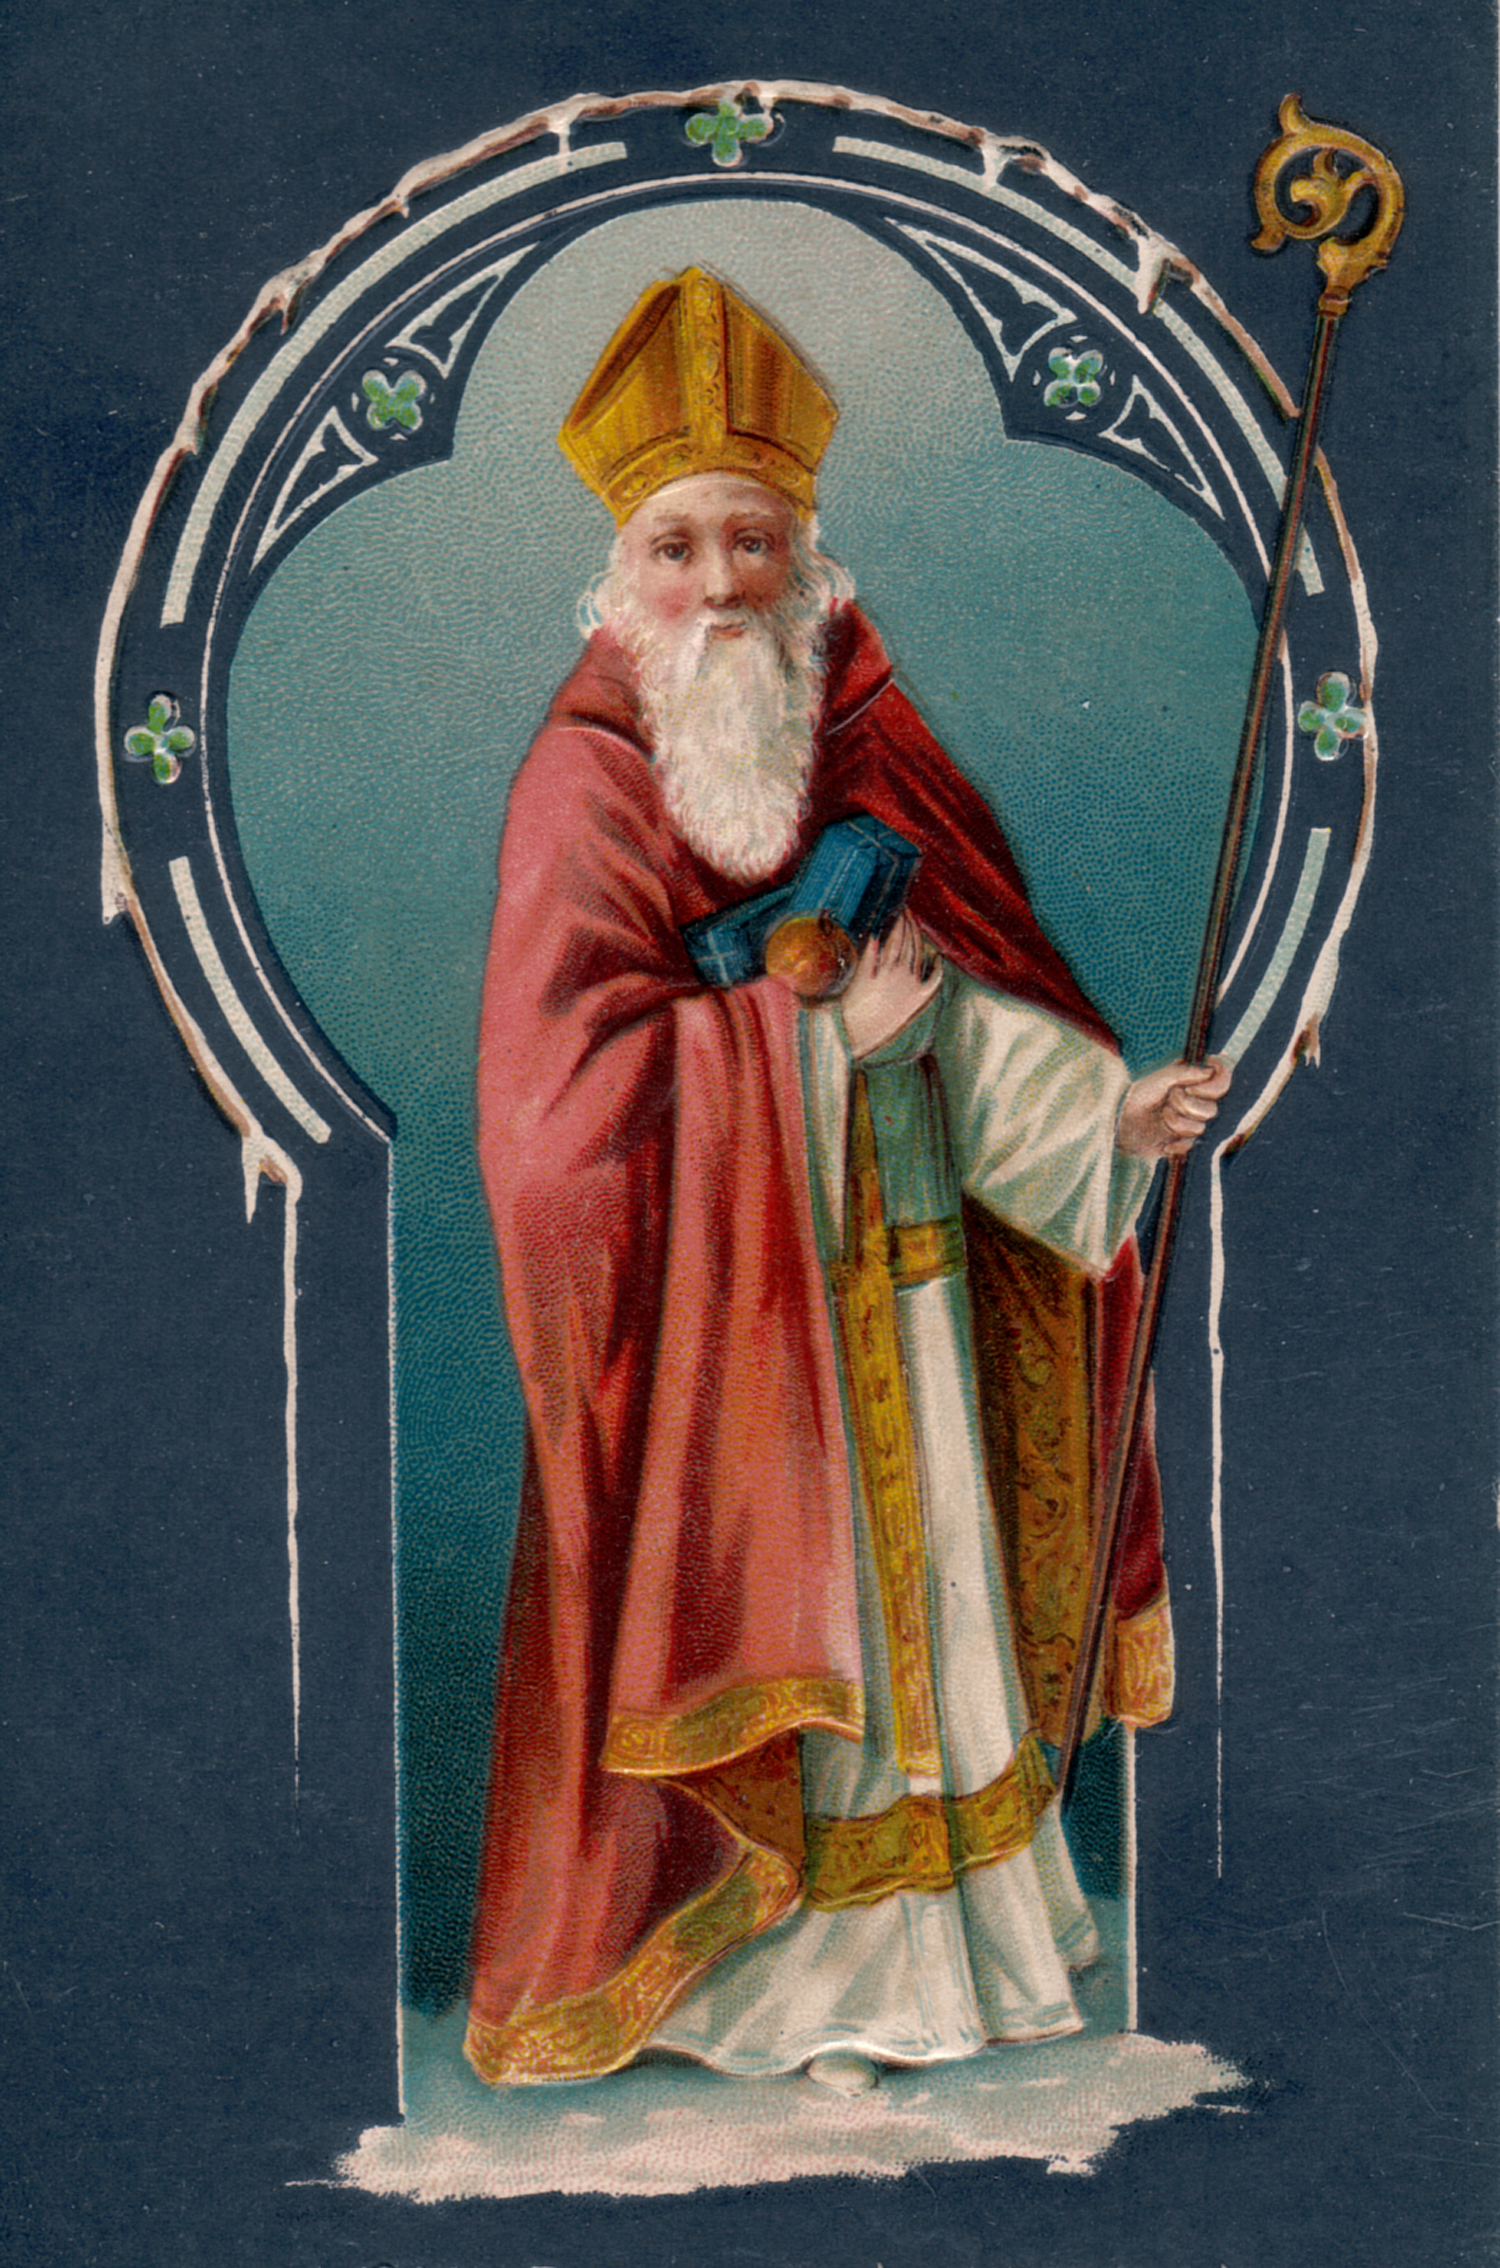 Would The Real St. Nicholas Please Stand Up?